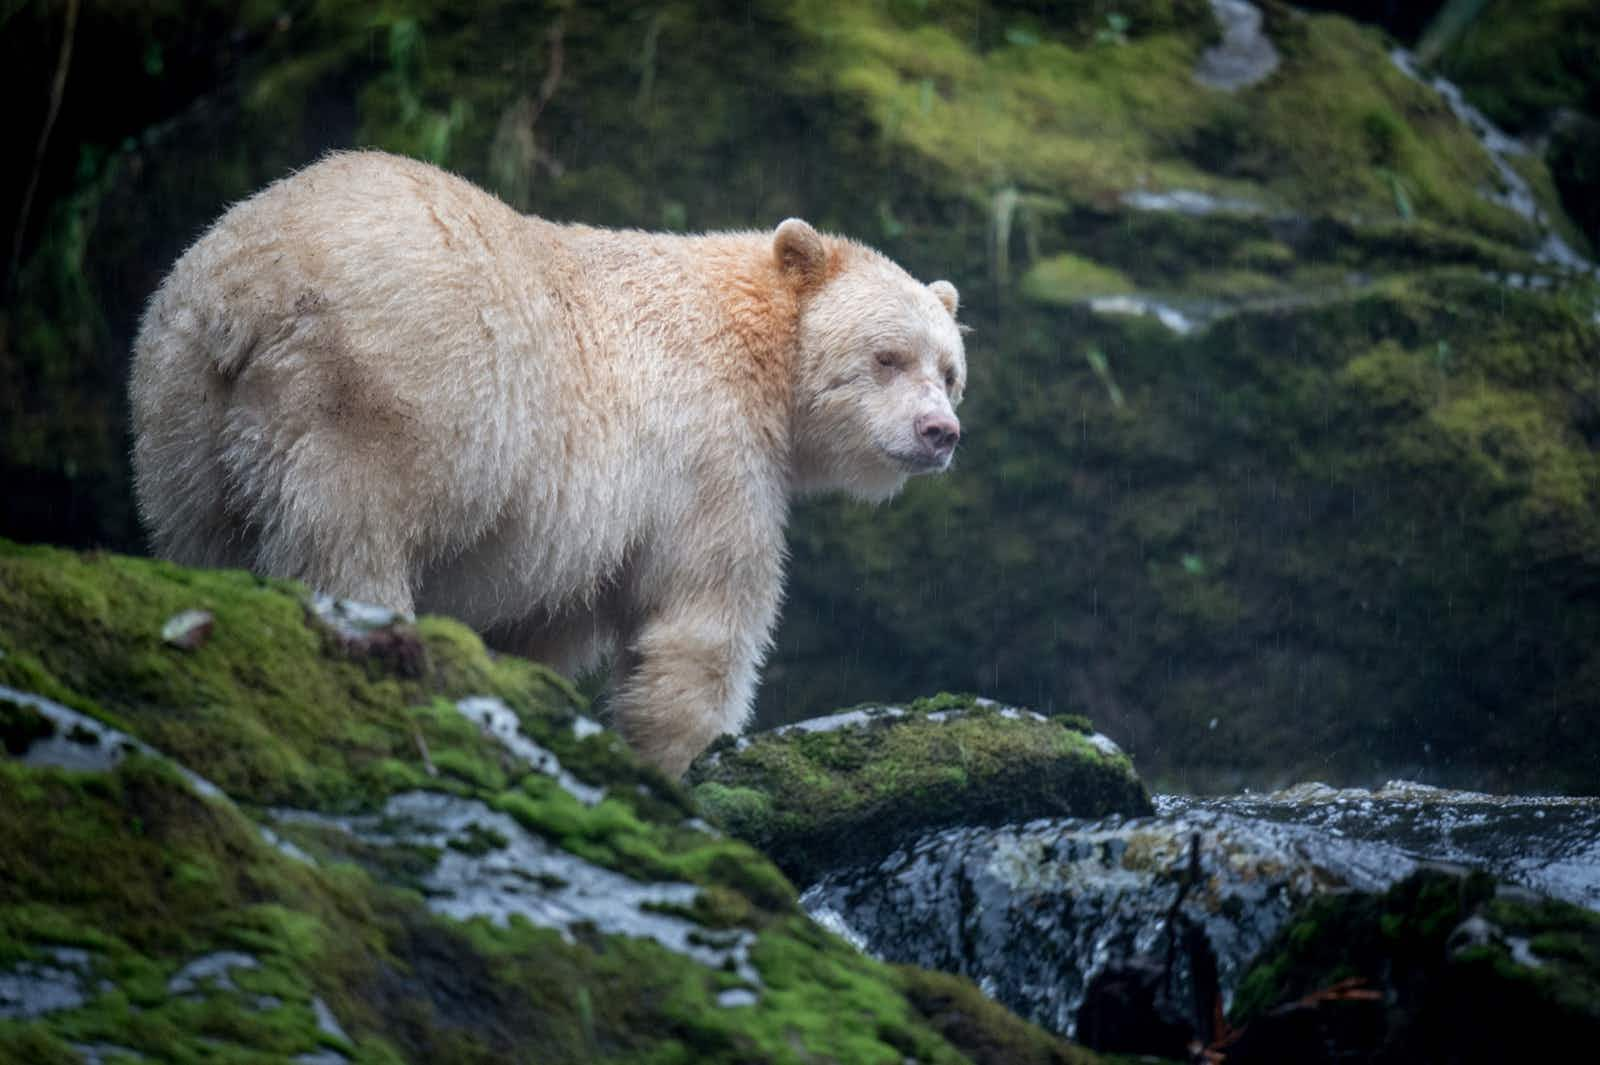 A bear with white fur stands on a moss-covered rock in a stream next to a waterfall in Canada's Great Bear Rain Forest